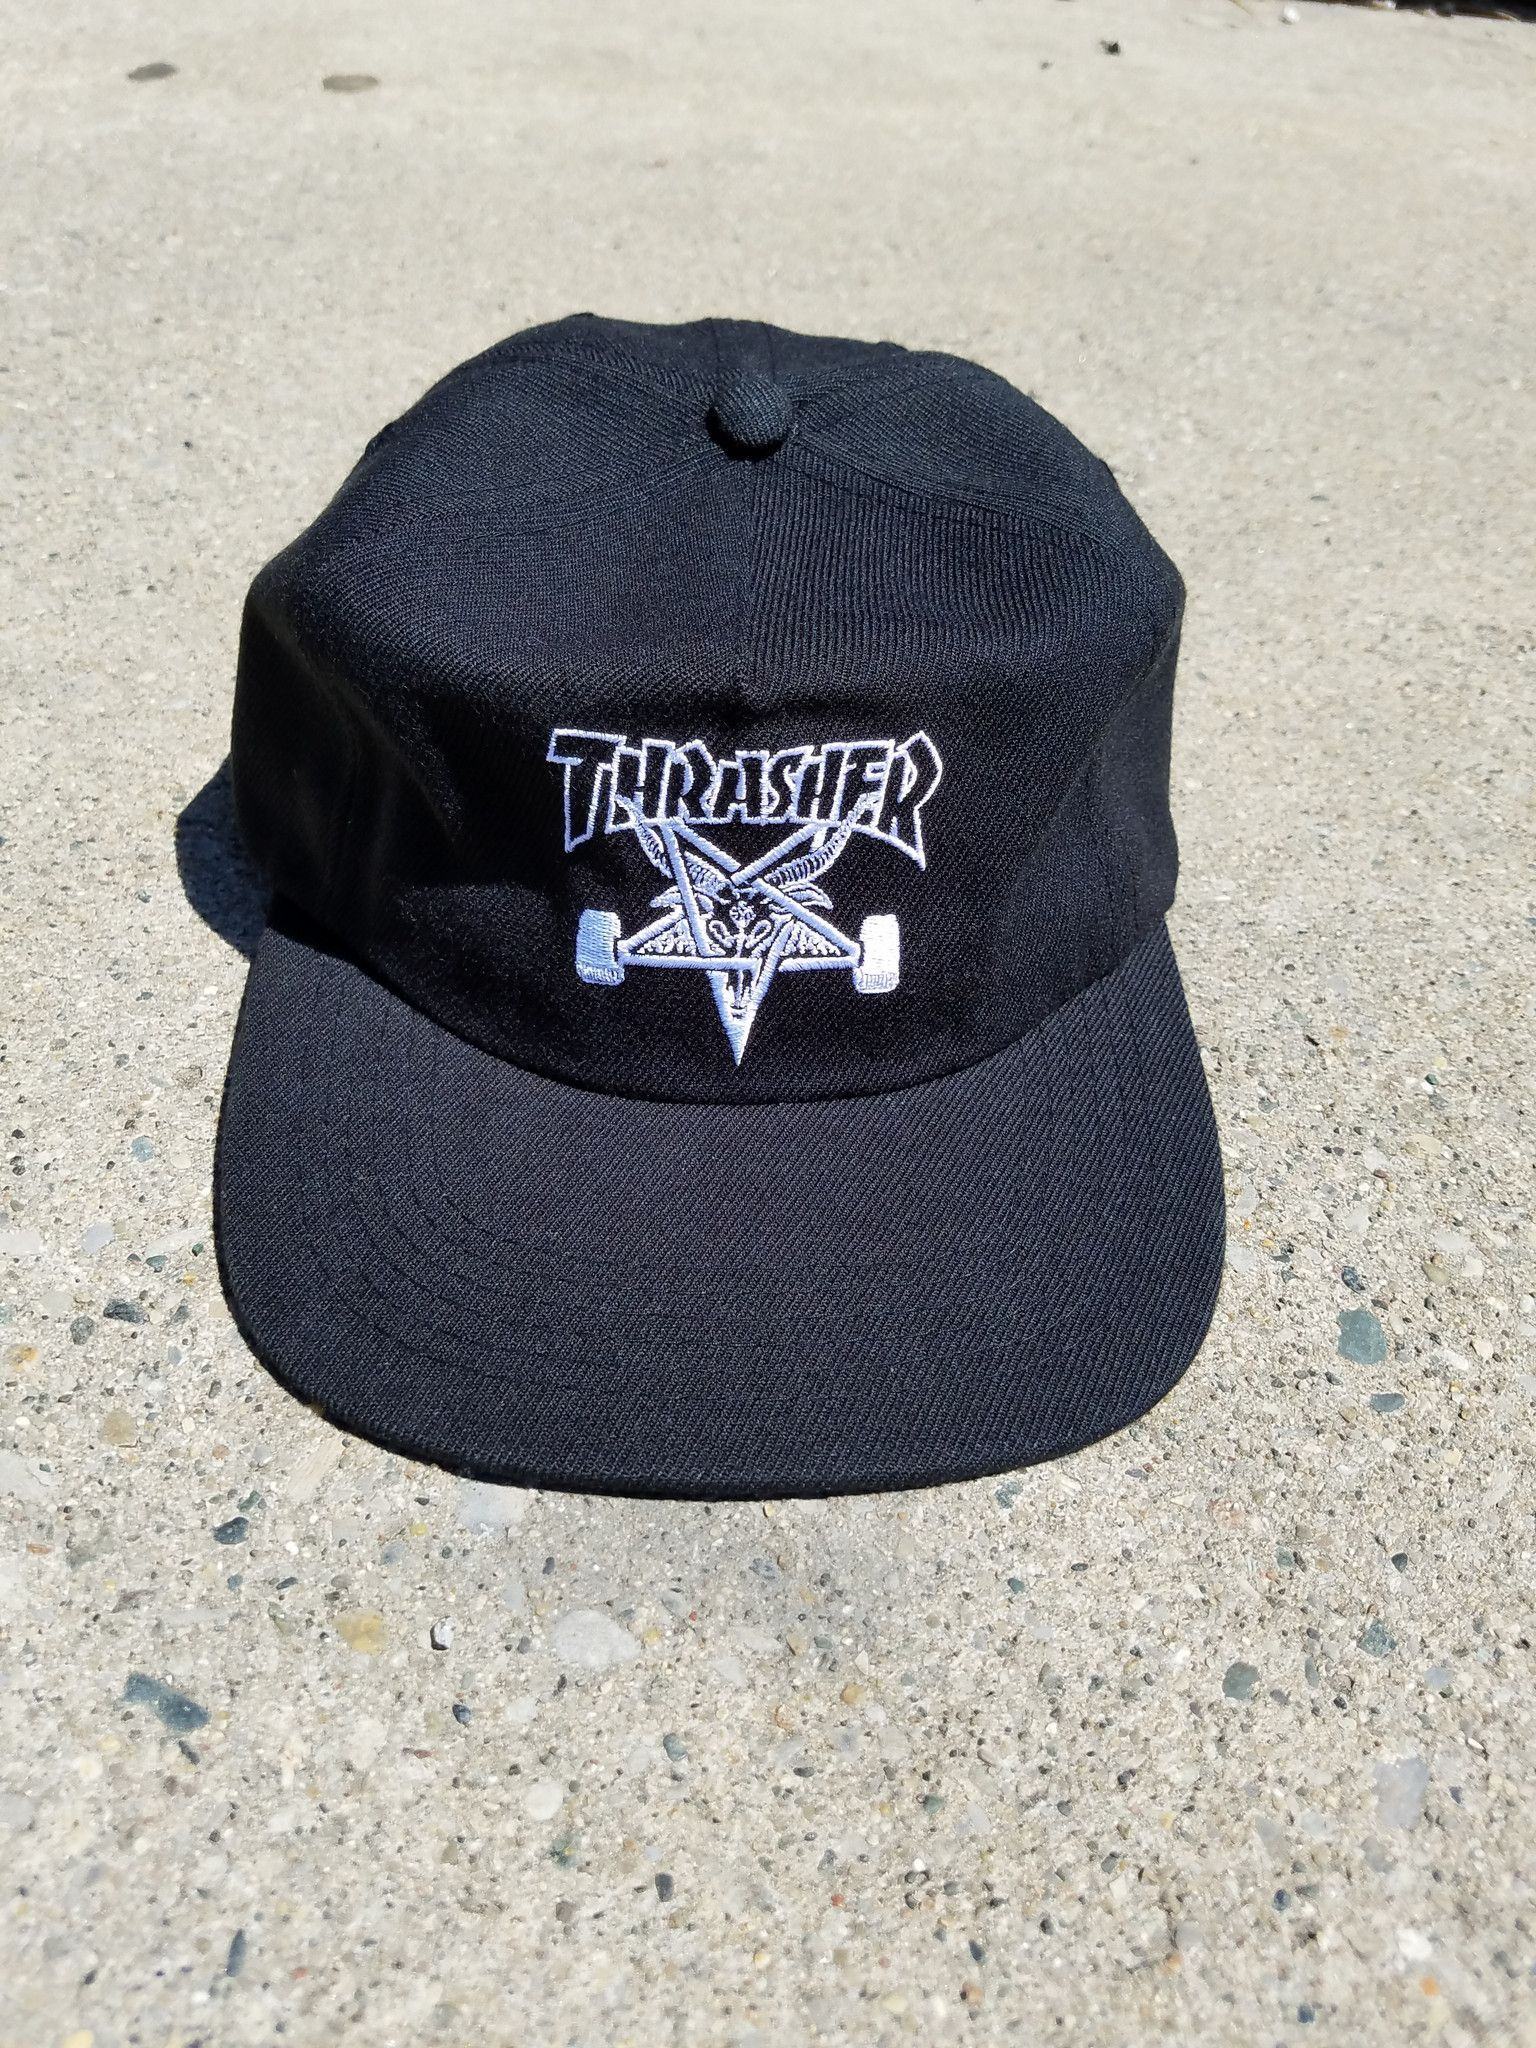 d9e8632b24b Thrasher Skategoat wool blend 6 panel snapback